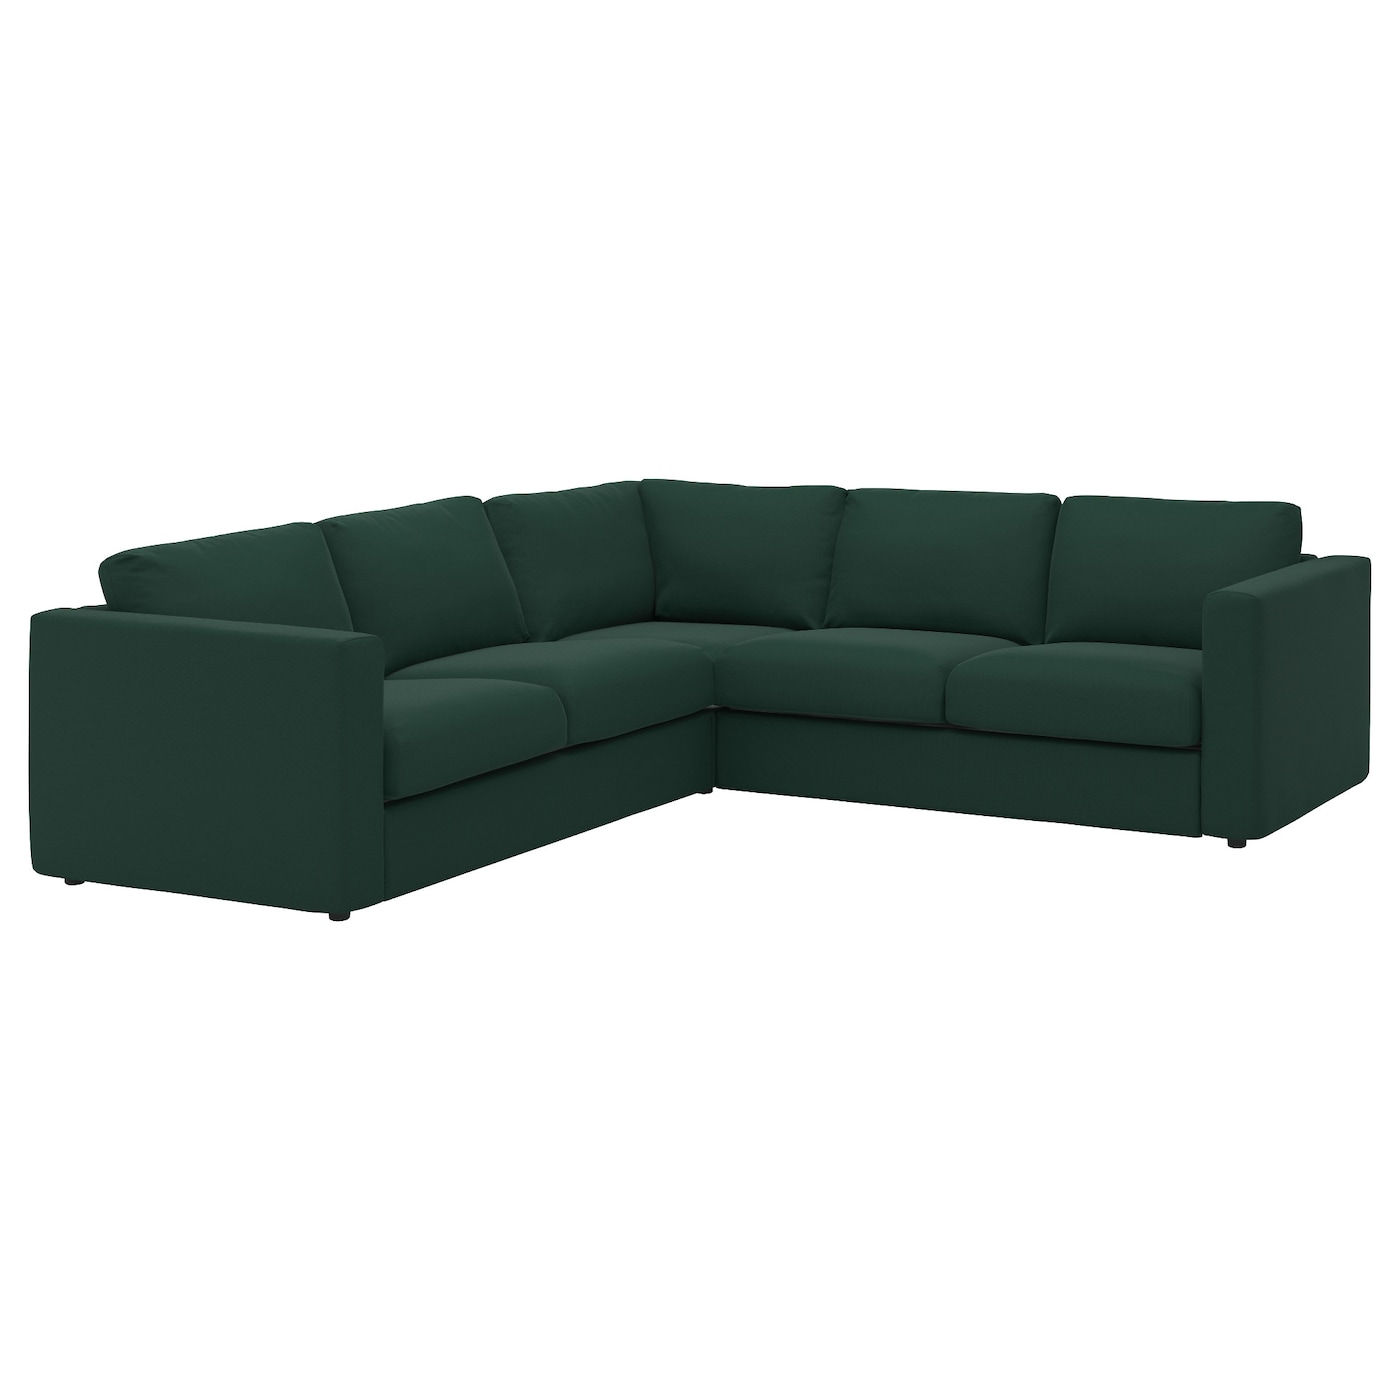 Vimle corner sofa 4 seat gunnared dark green ikea for Ikea couch planer